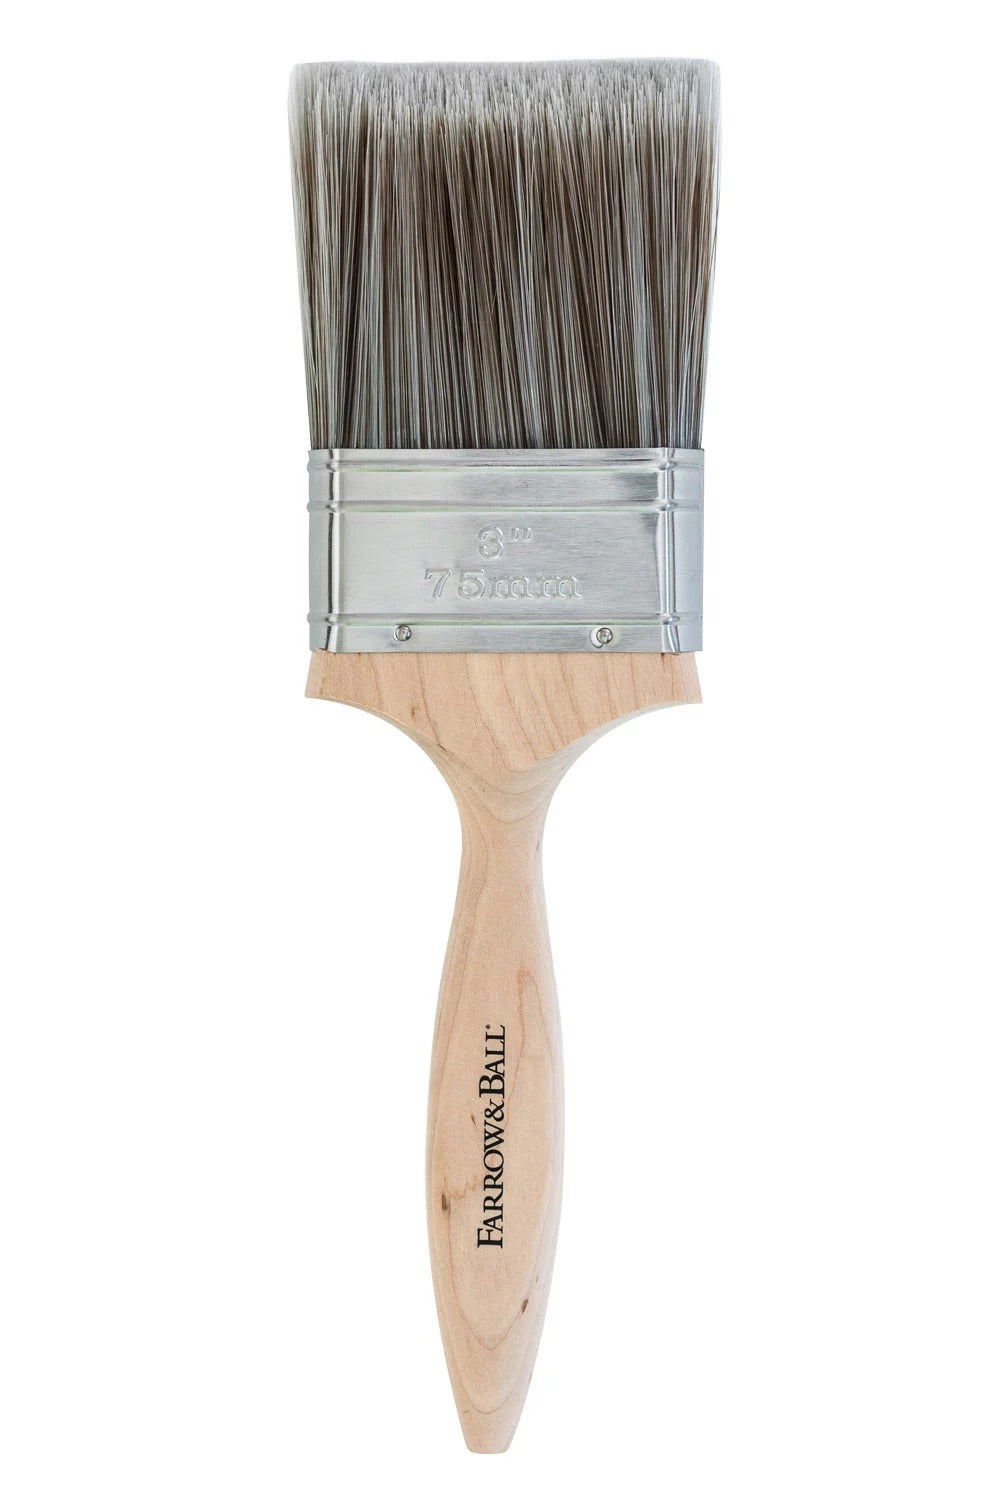 "3"" (75mm) F&B Paint Brush"